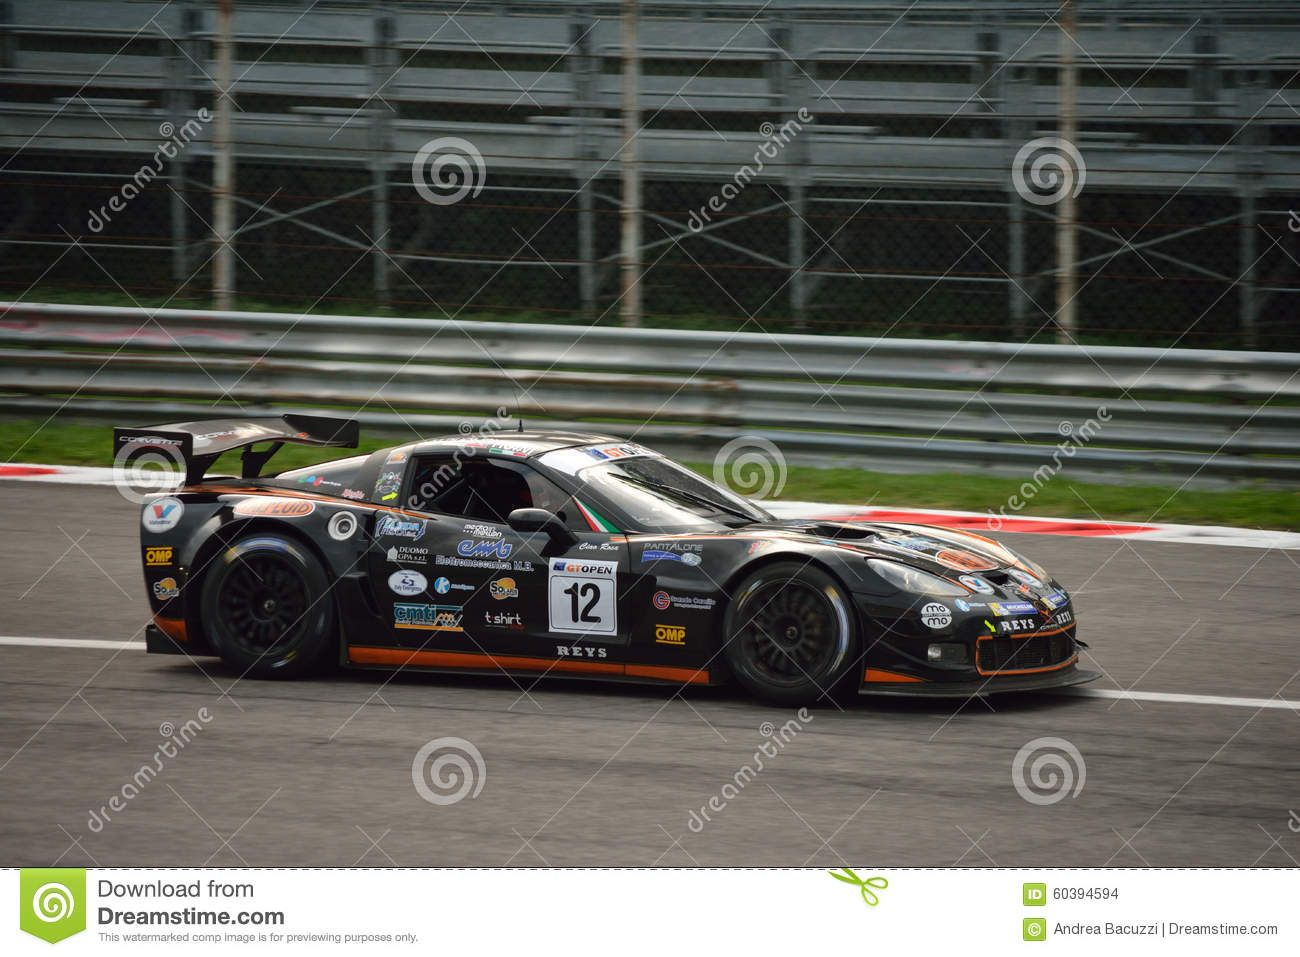 GT Open Chevrolet Corvette GT3 At Monza - Download From Over 36 Million High Quality Stock Photos, Images, Vectors. Sign up for FREE today. Image: 60394594